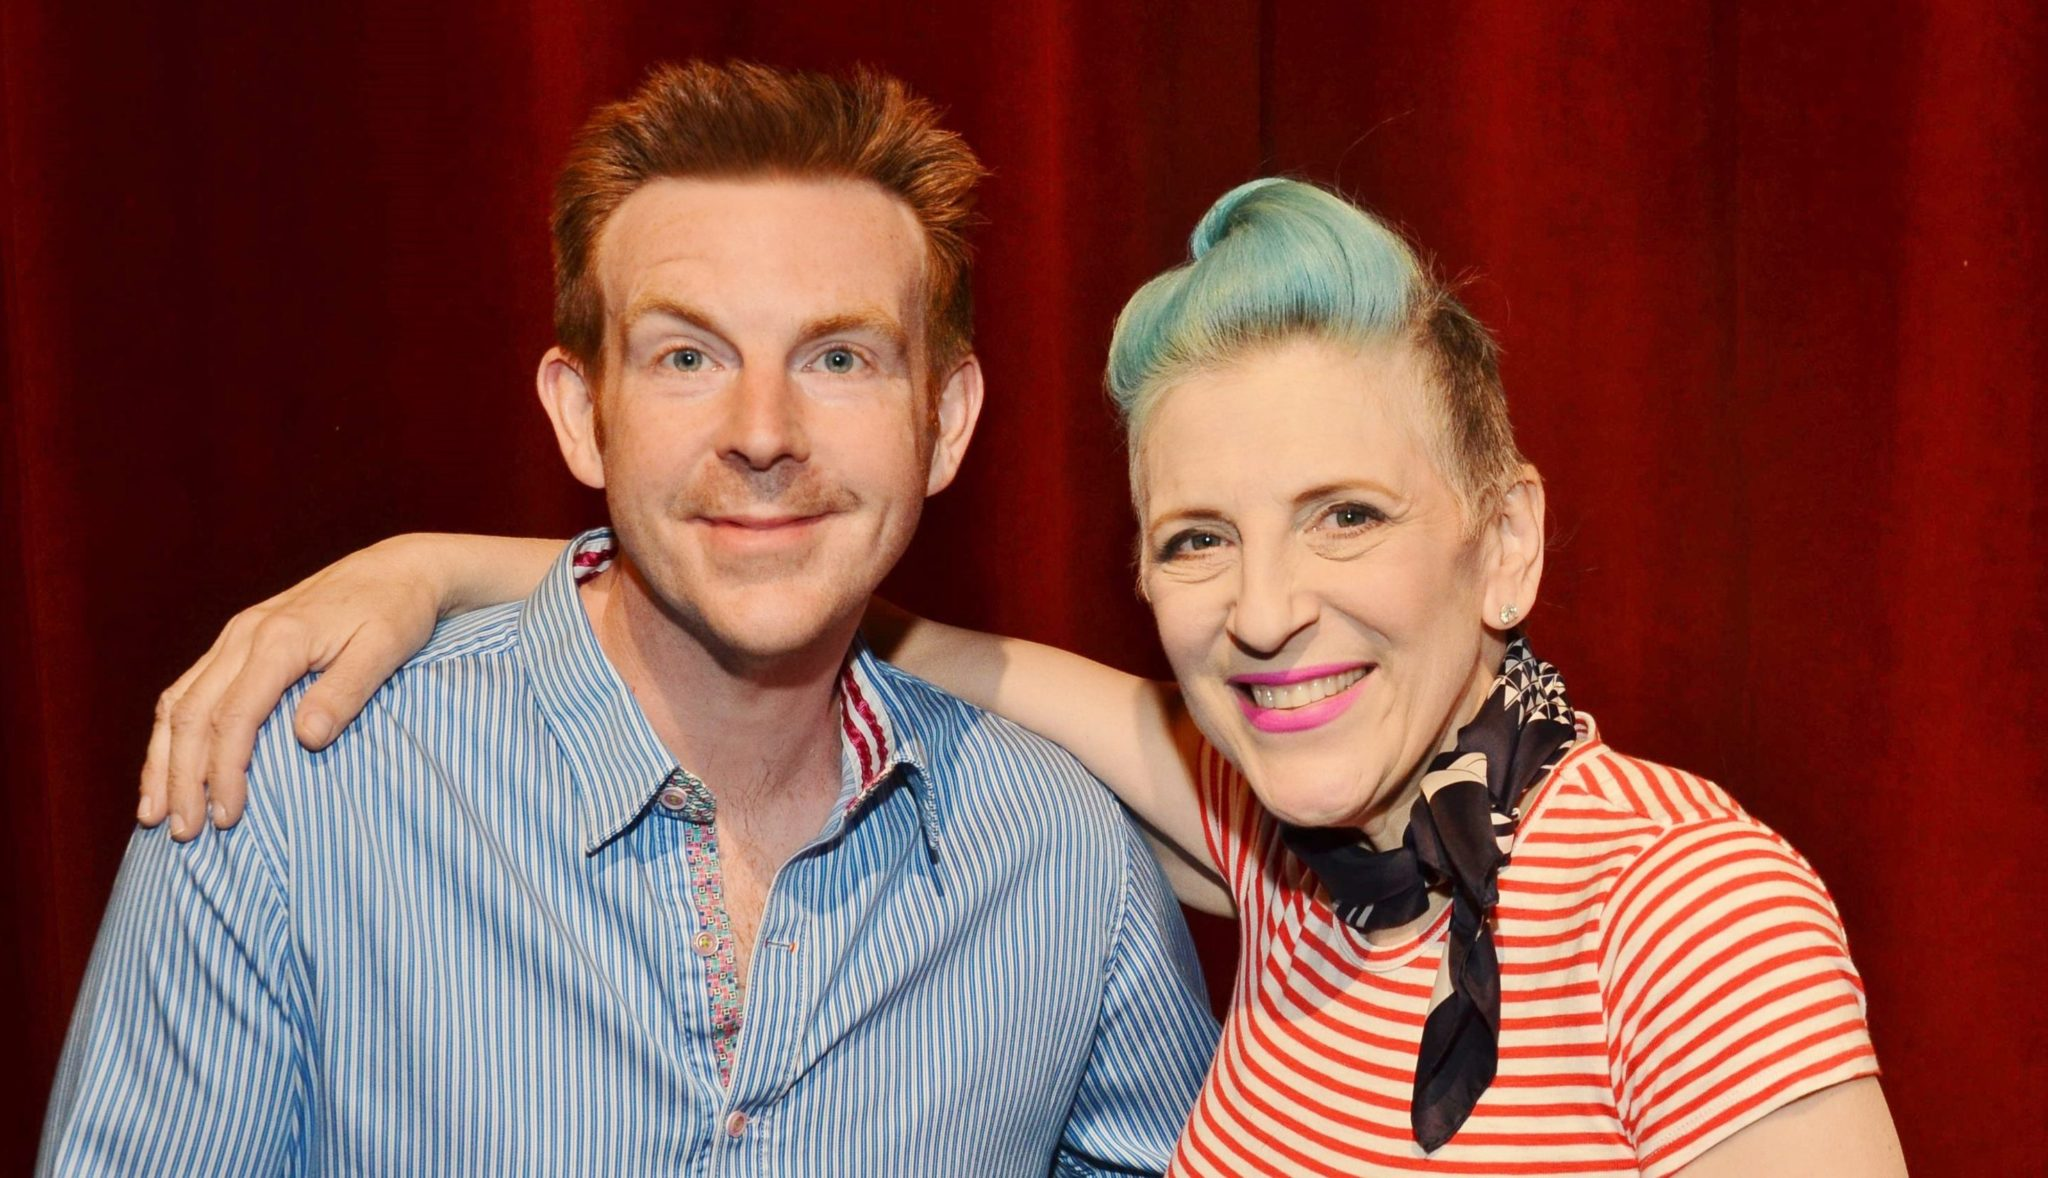 Enjoy Celebrity Radio's Comedian Lisa Lampanelli Interview…. Lisa Lampanelli is Comedy's Lovable Queen of Mean and Celebrity Radio's FAVOURITE (living) female comedian. After Joan Rivers, no-one […]